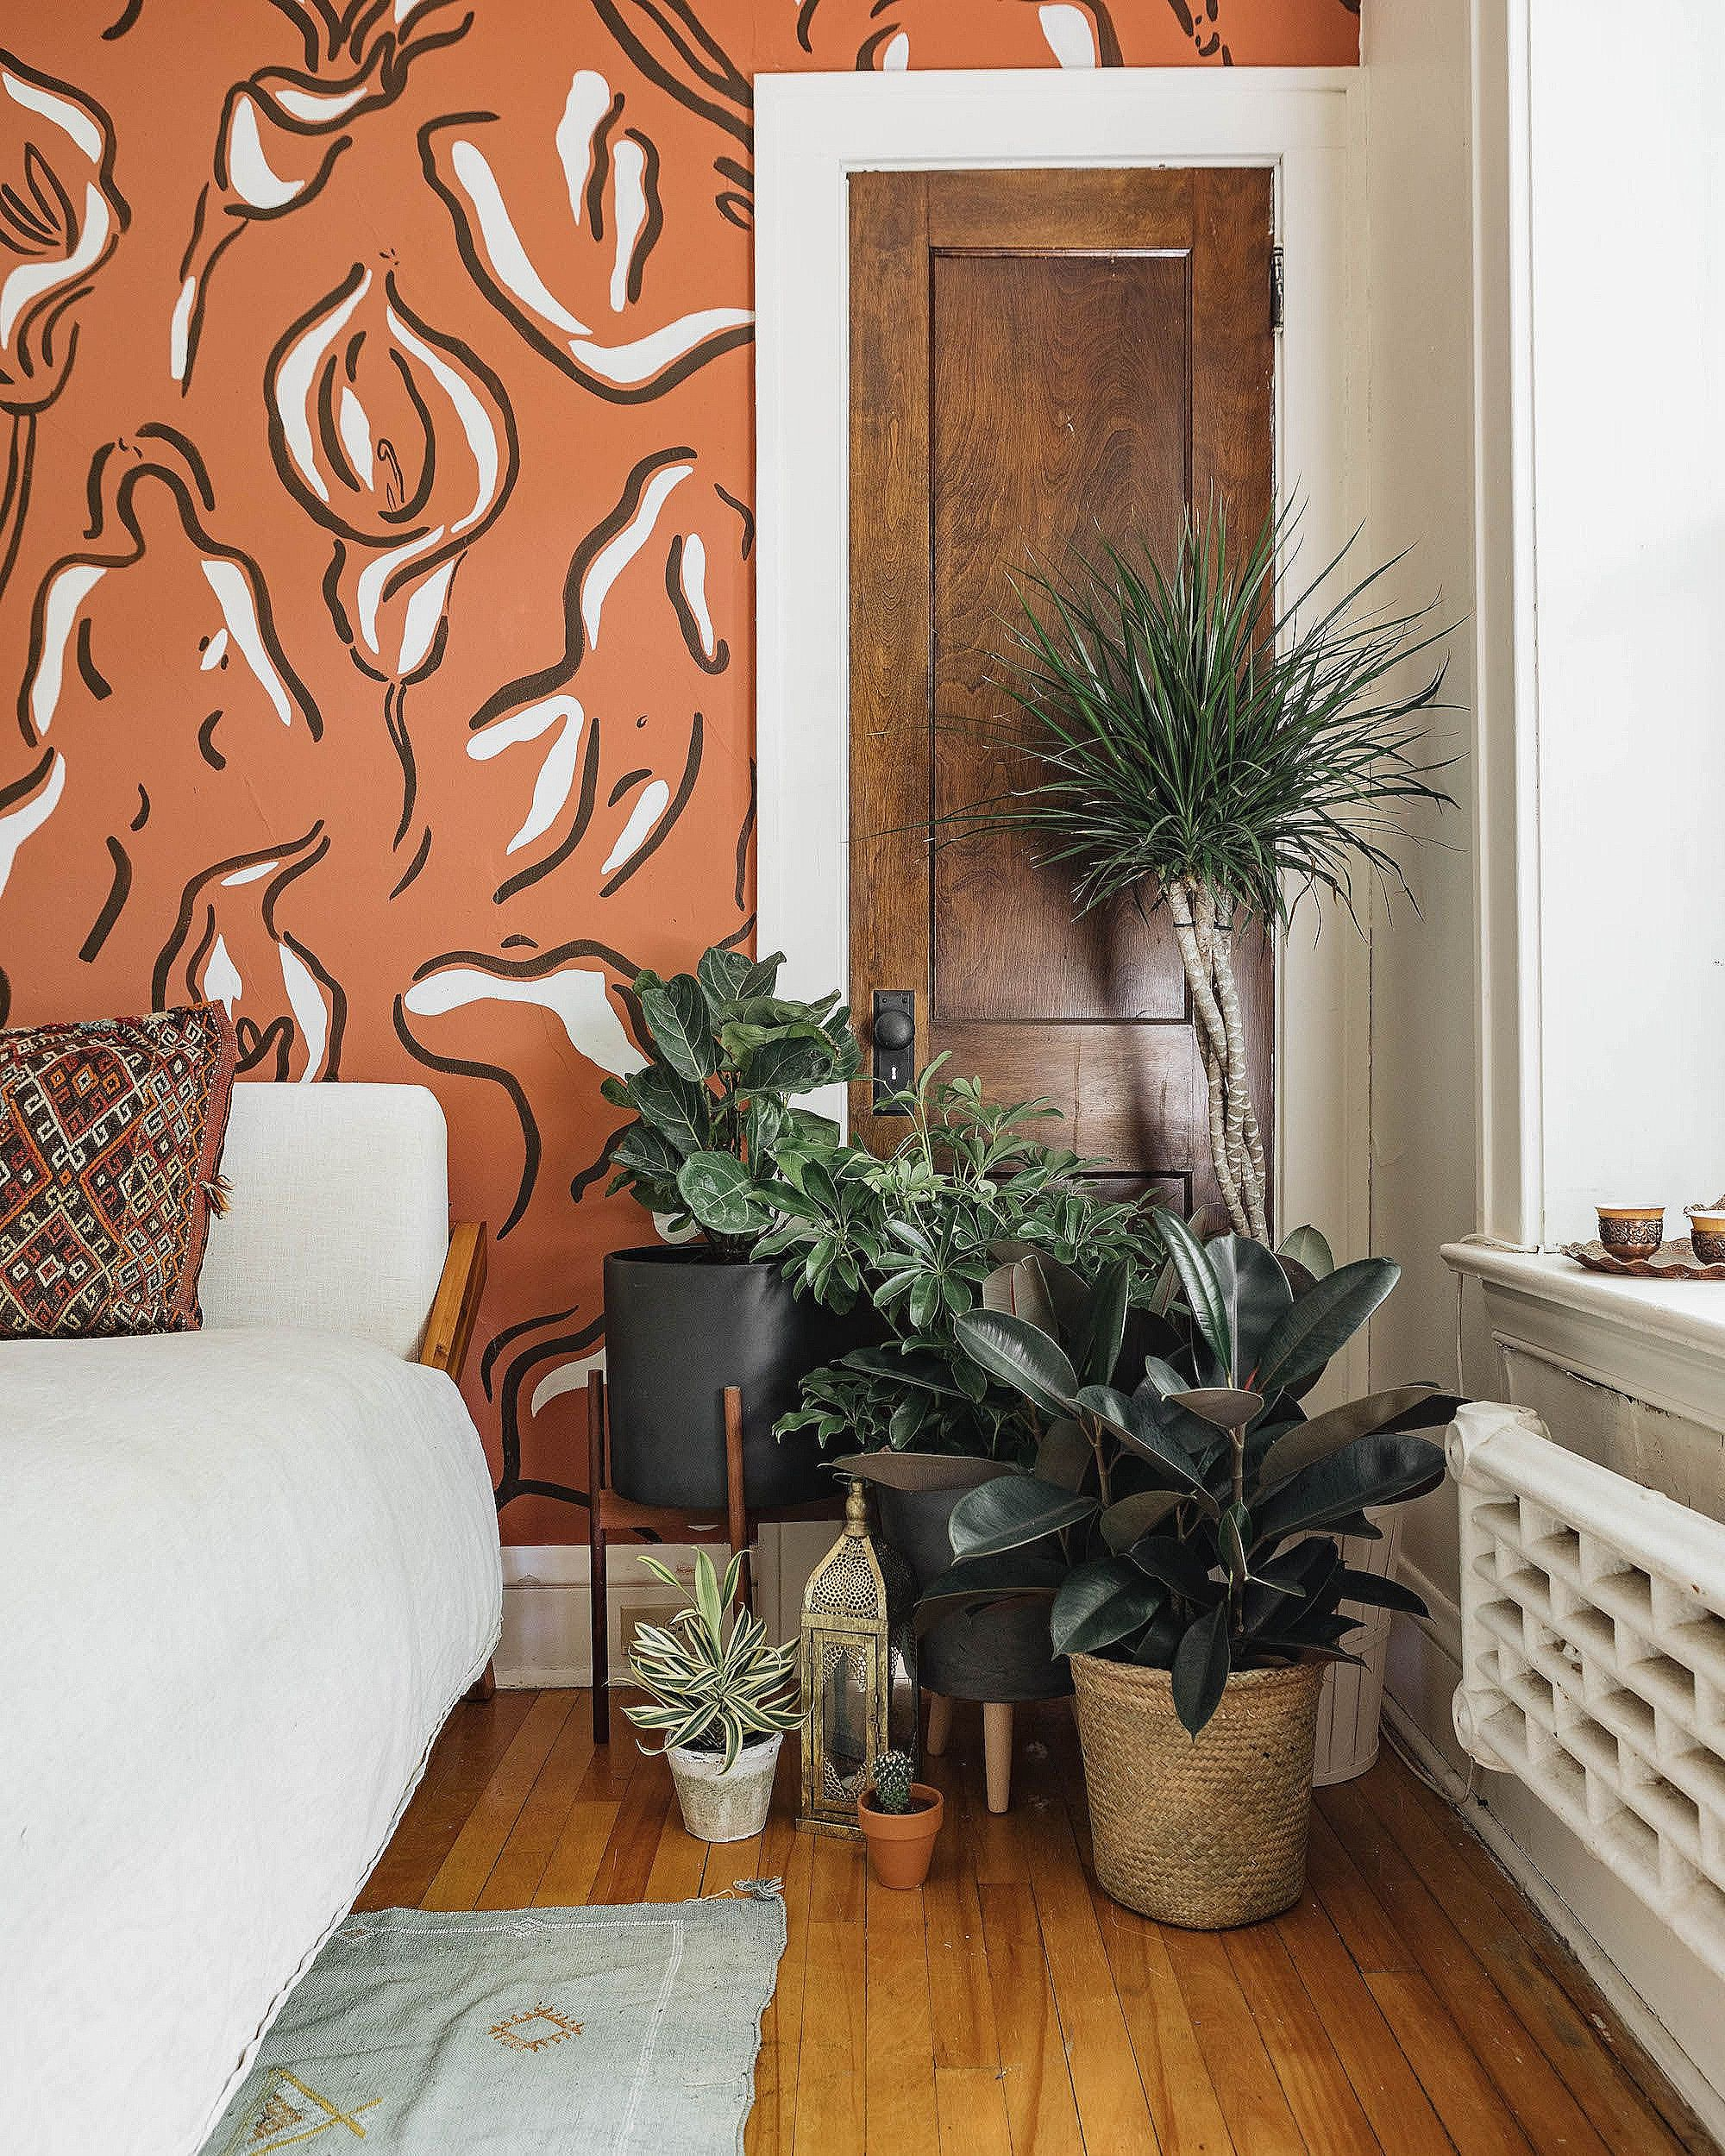 Get inspiration from these top behr paint color ideas that freshen up family rooms as suggested by the design experts. Elegant Behr Paint Ideas for Living Rooms - #behrpaint ...